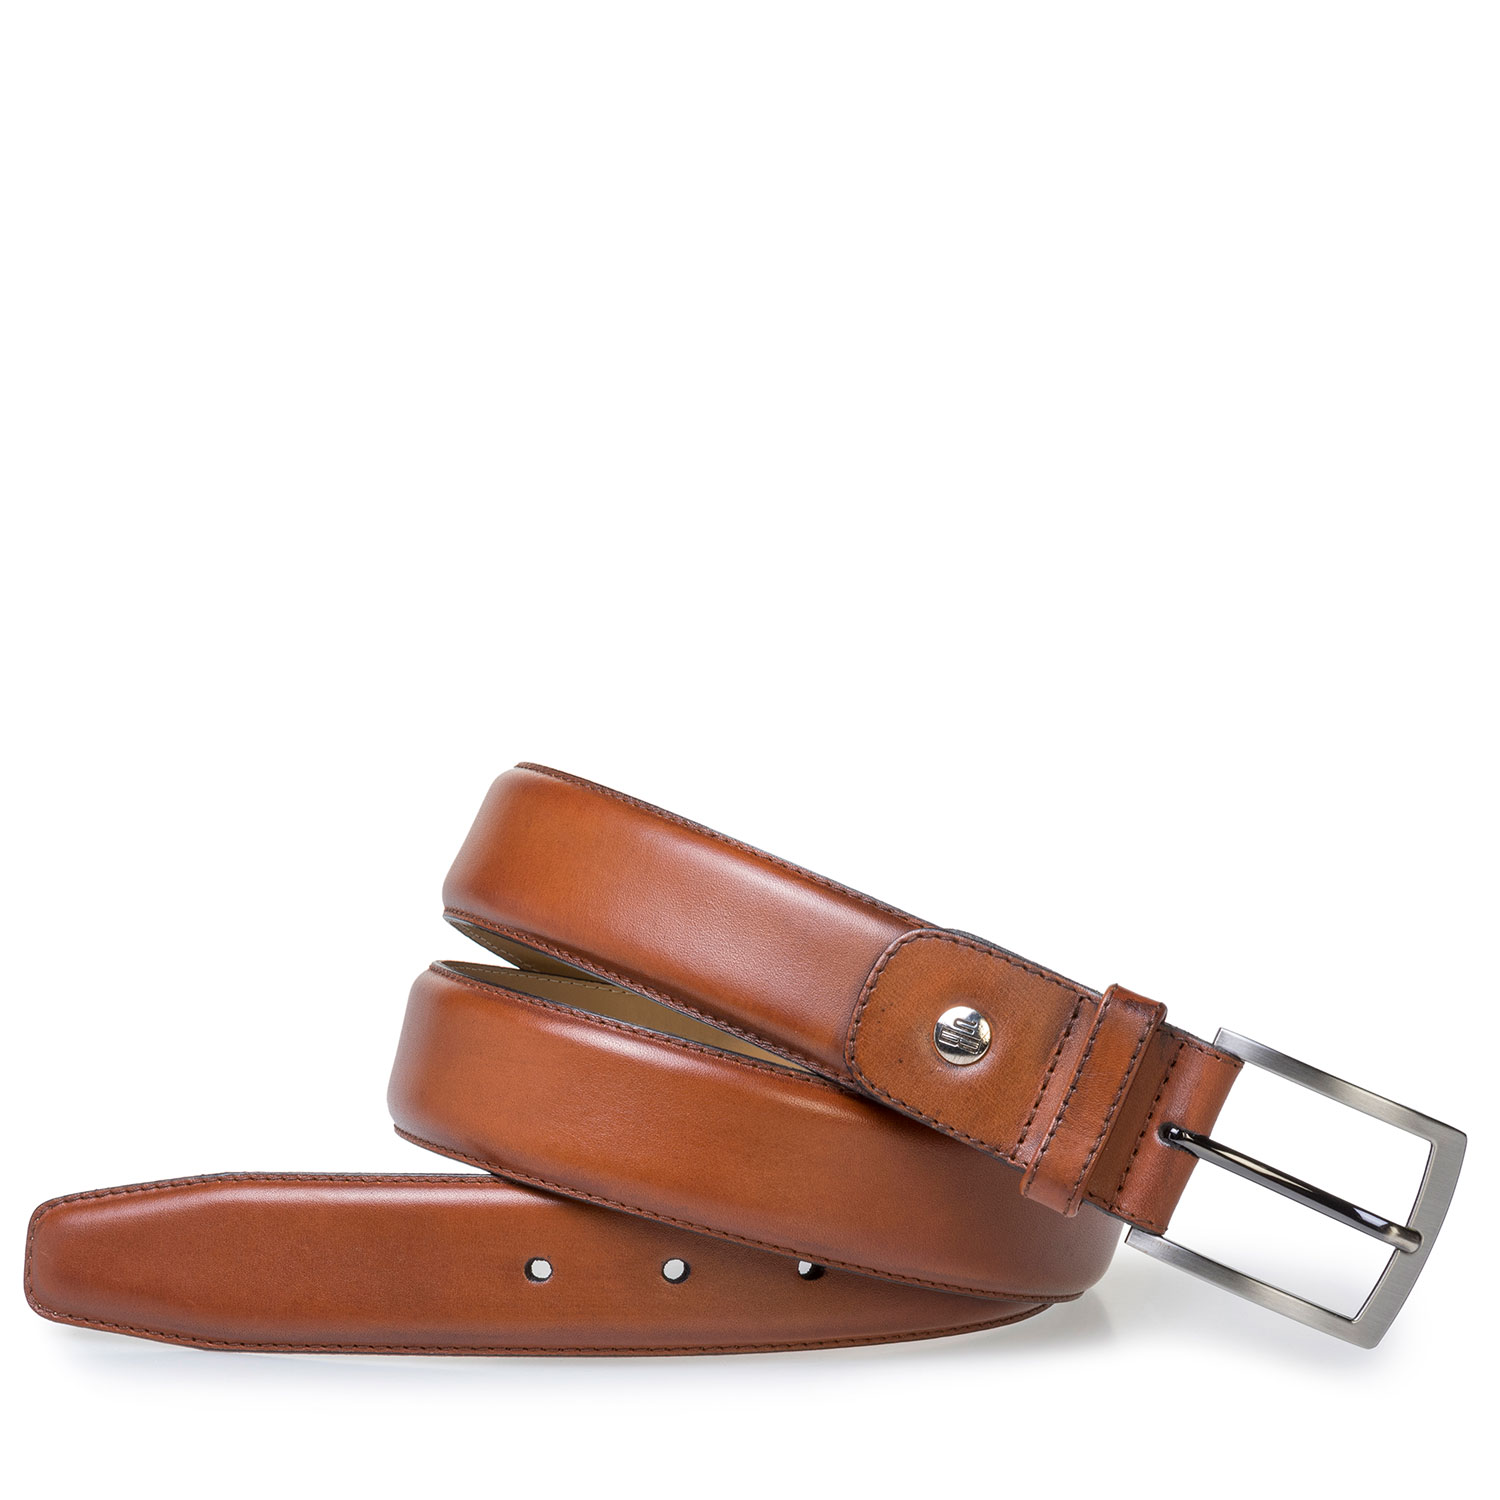 75076/32 - Dark cognac-coloured calf leather belt